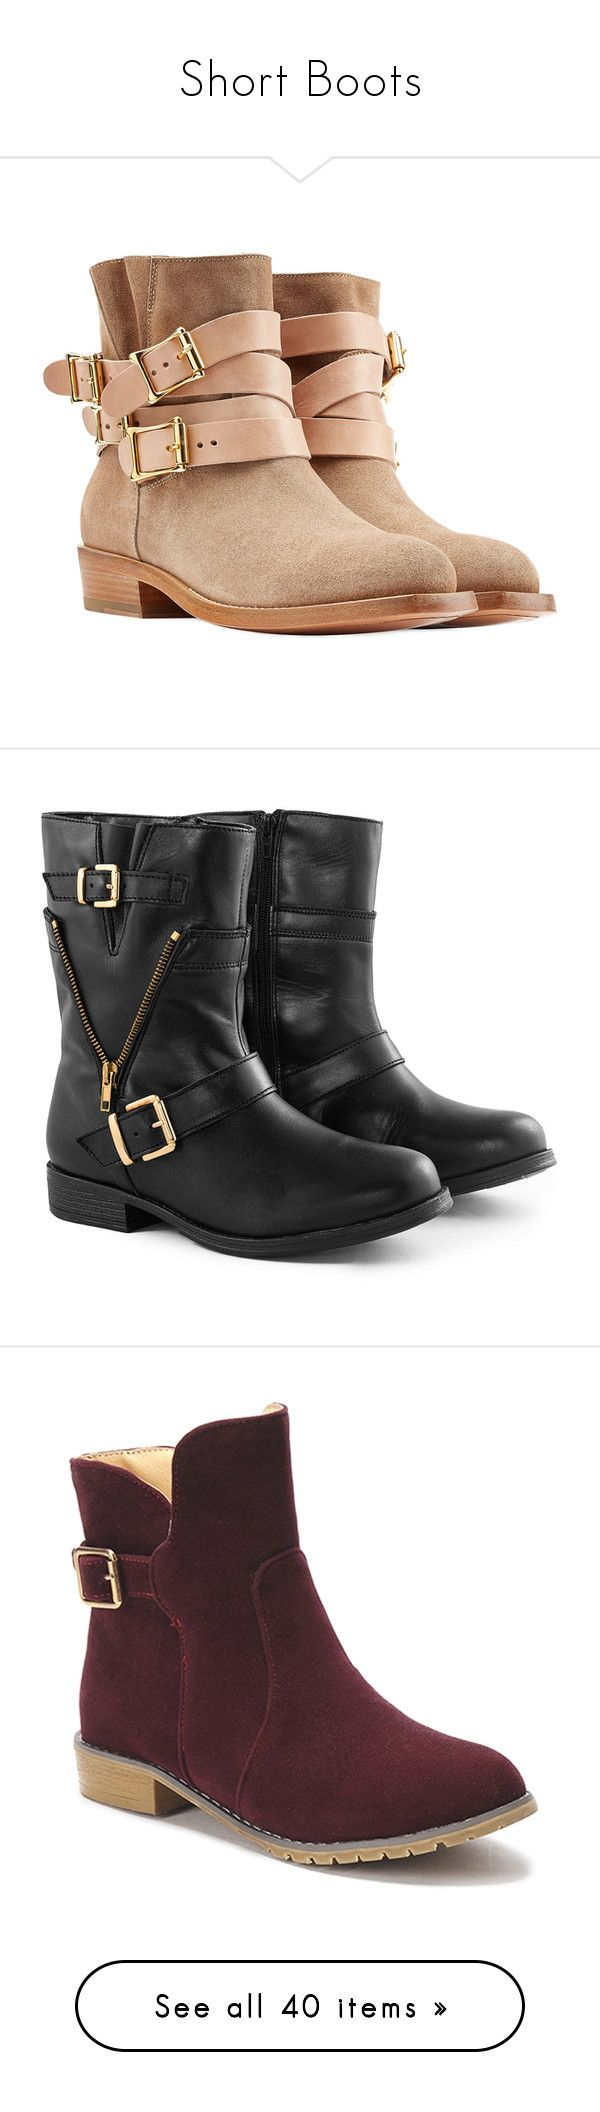 """""""Short Boots"""" by leesakate ❤ liked on Polyvore featuring shoes, boots, ankle booties, heels, sapatos, botas, black booties, lace up platform booties, suede lace-up booties and black heeled booties"""